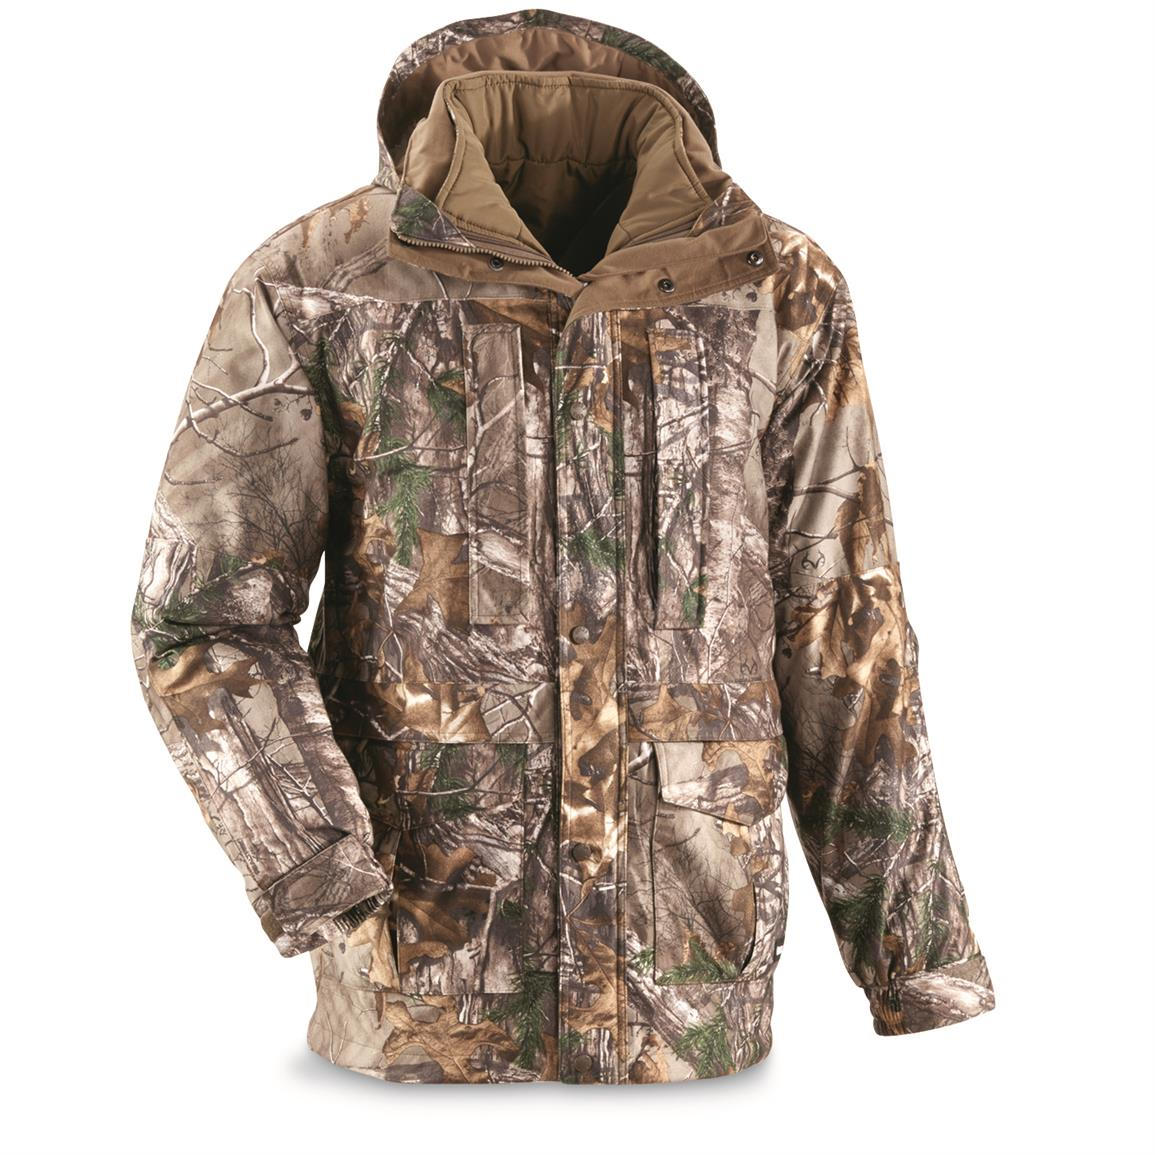 Guide Gear Steadfast 4-In-1 Waterproof  Hunting Parka, 150 Gram Thinsulate Platinum with X-Static, Realtree Xtra